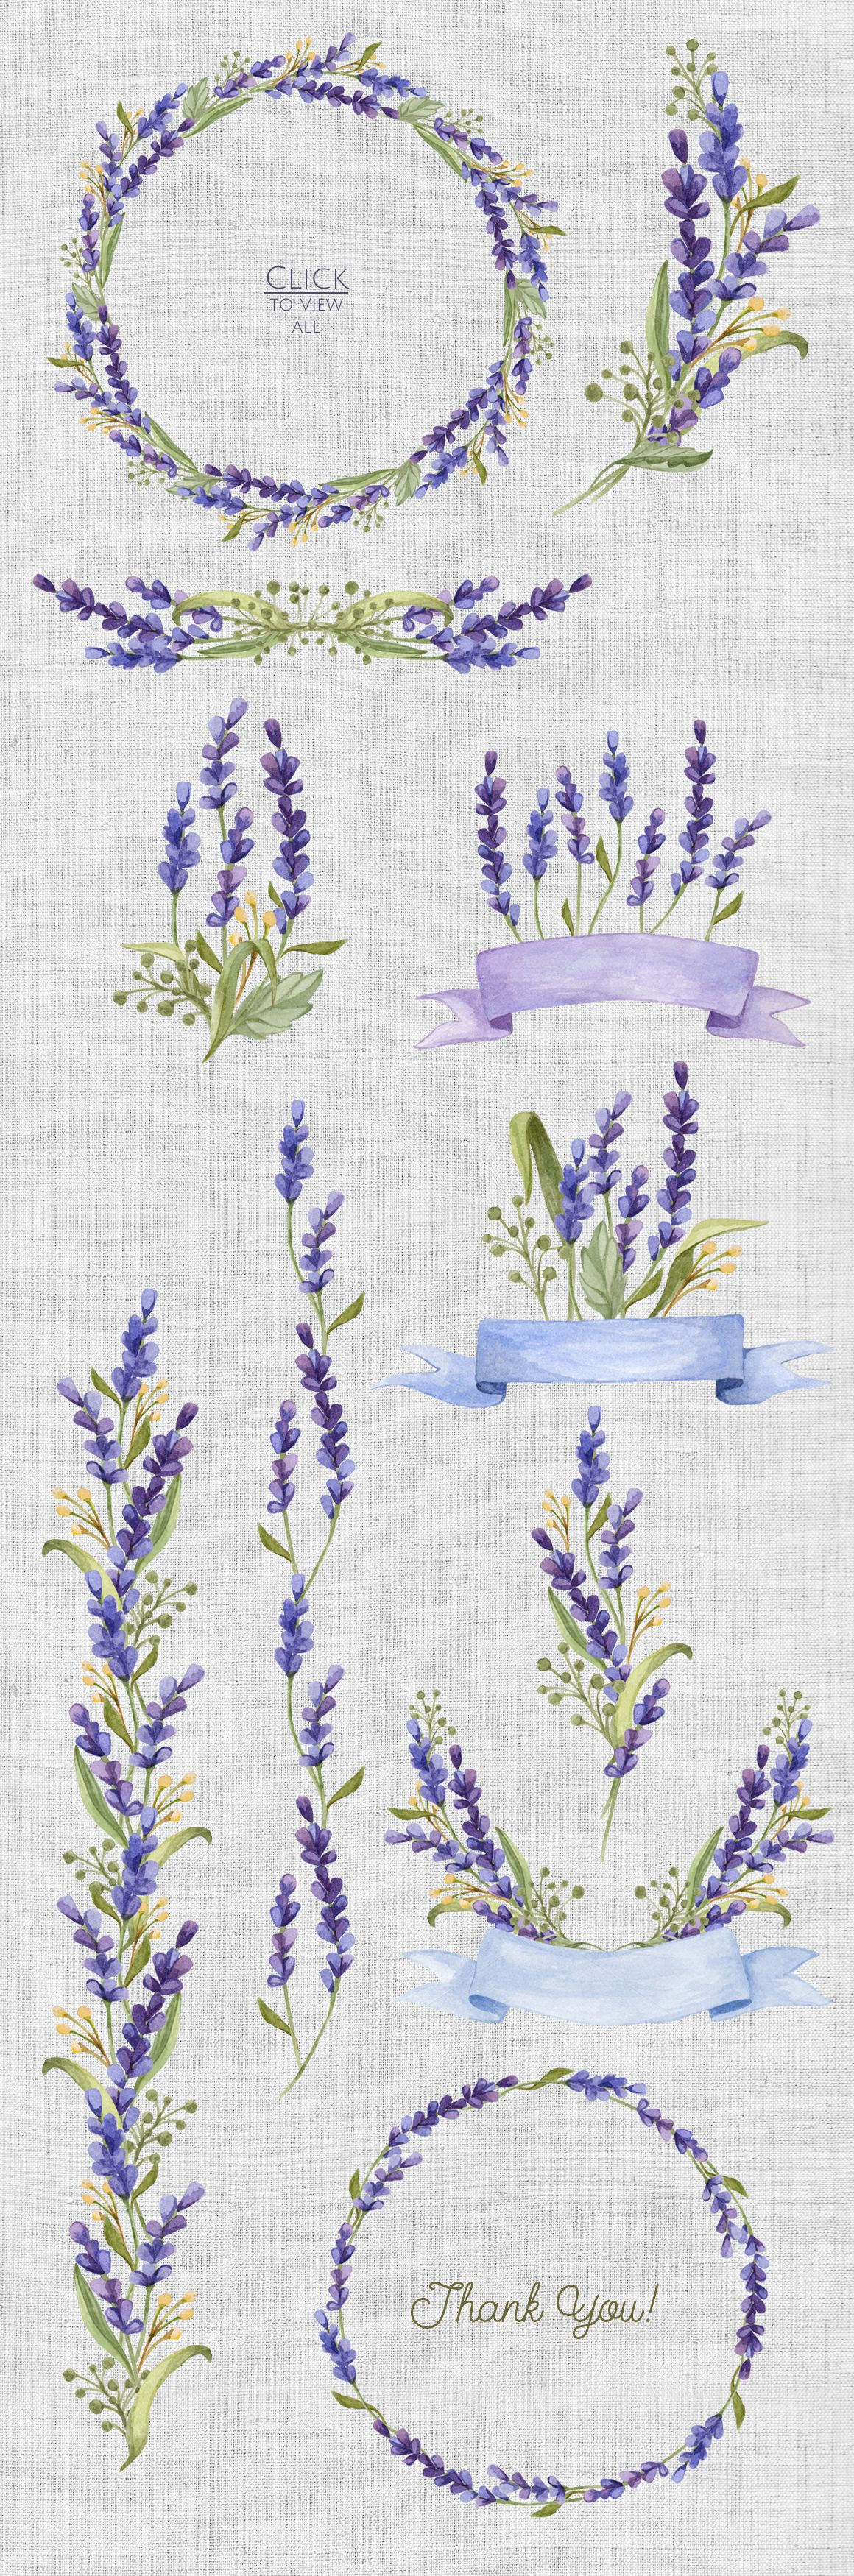 Watercolor set with Lavender Flowers by NataliVA on Creative Market